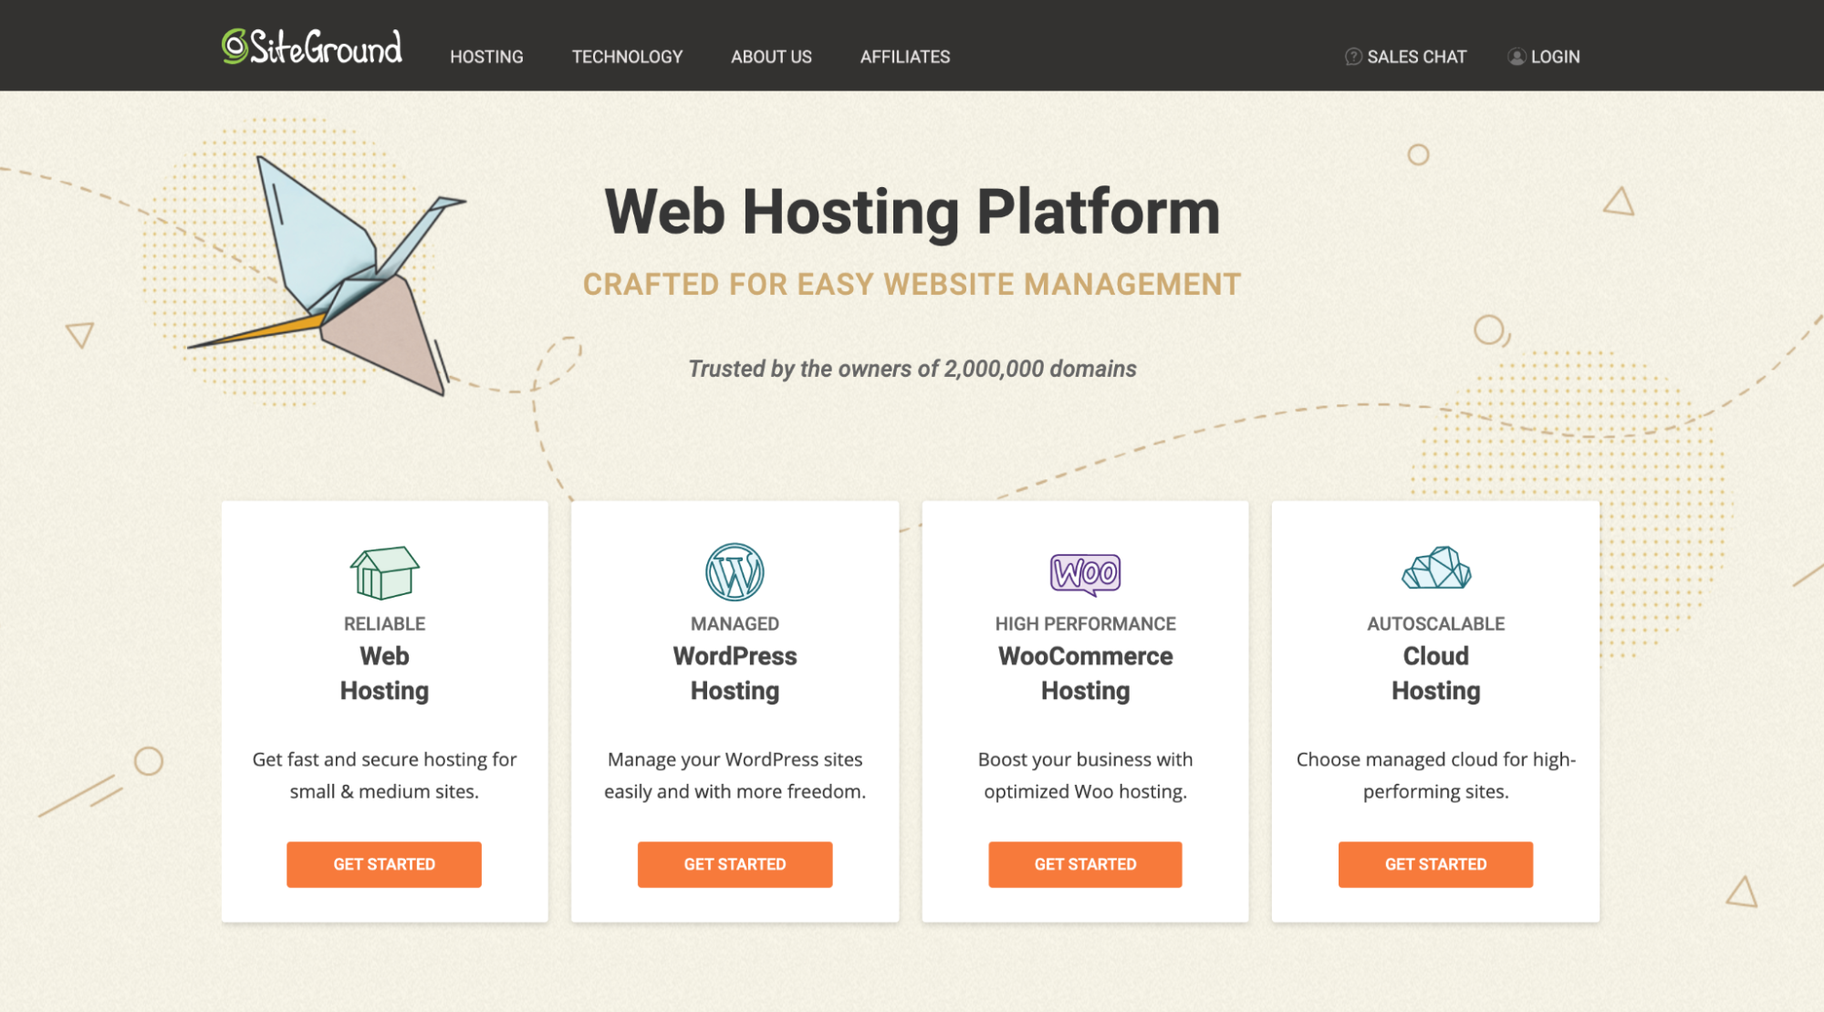 Best Web Hosting for Small Businesses: SiteGround